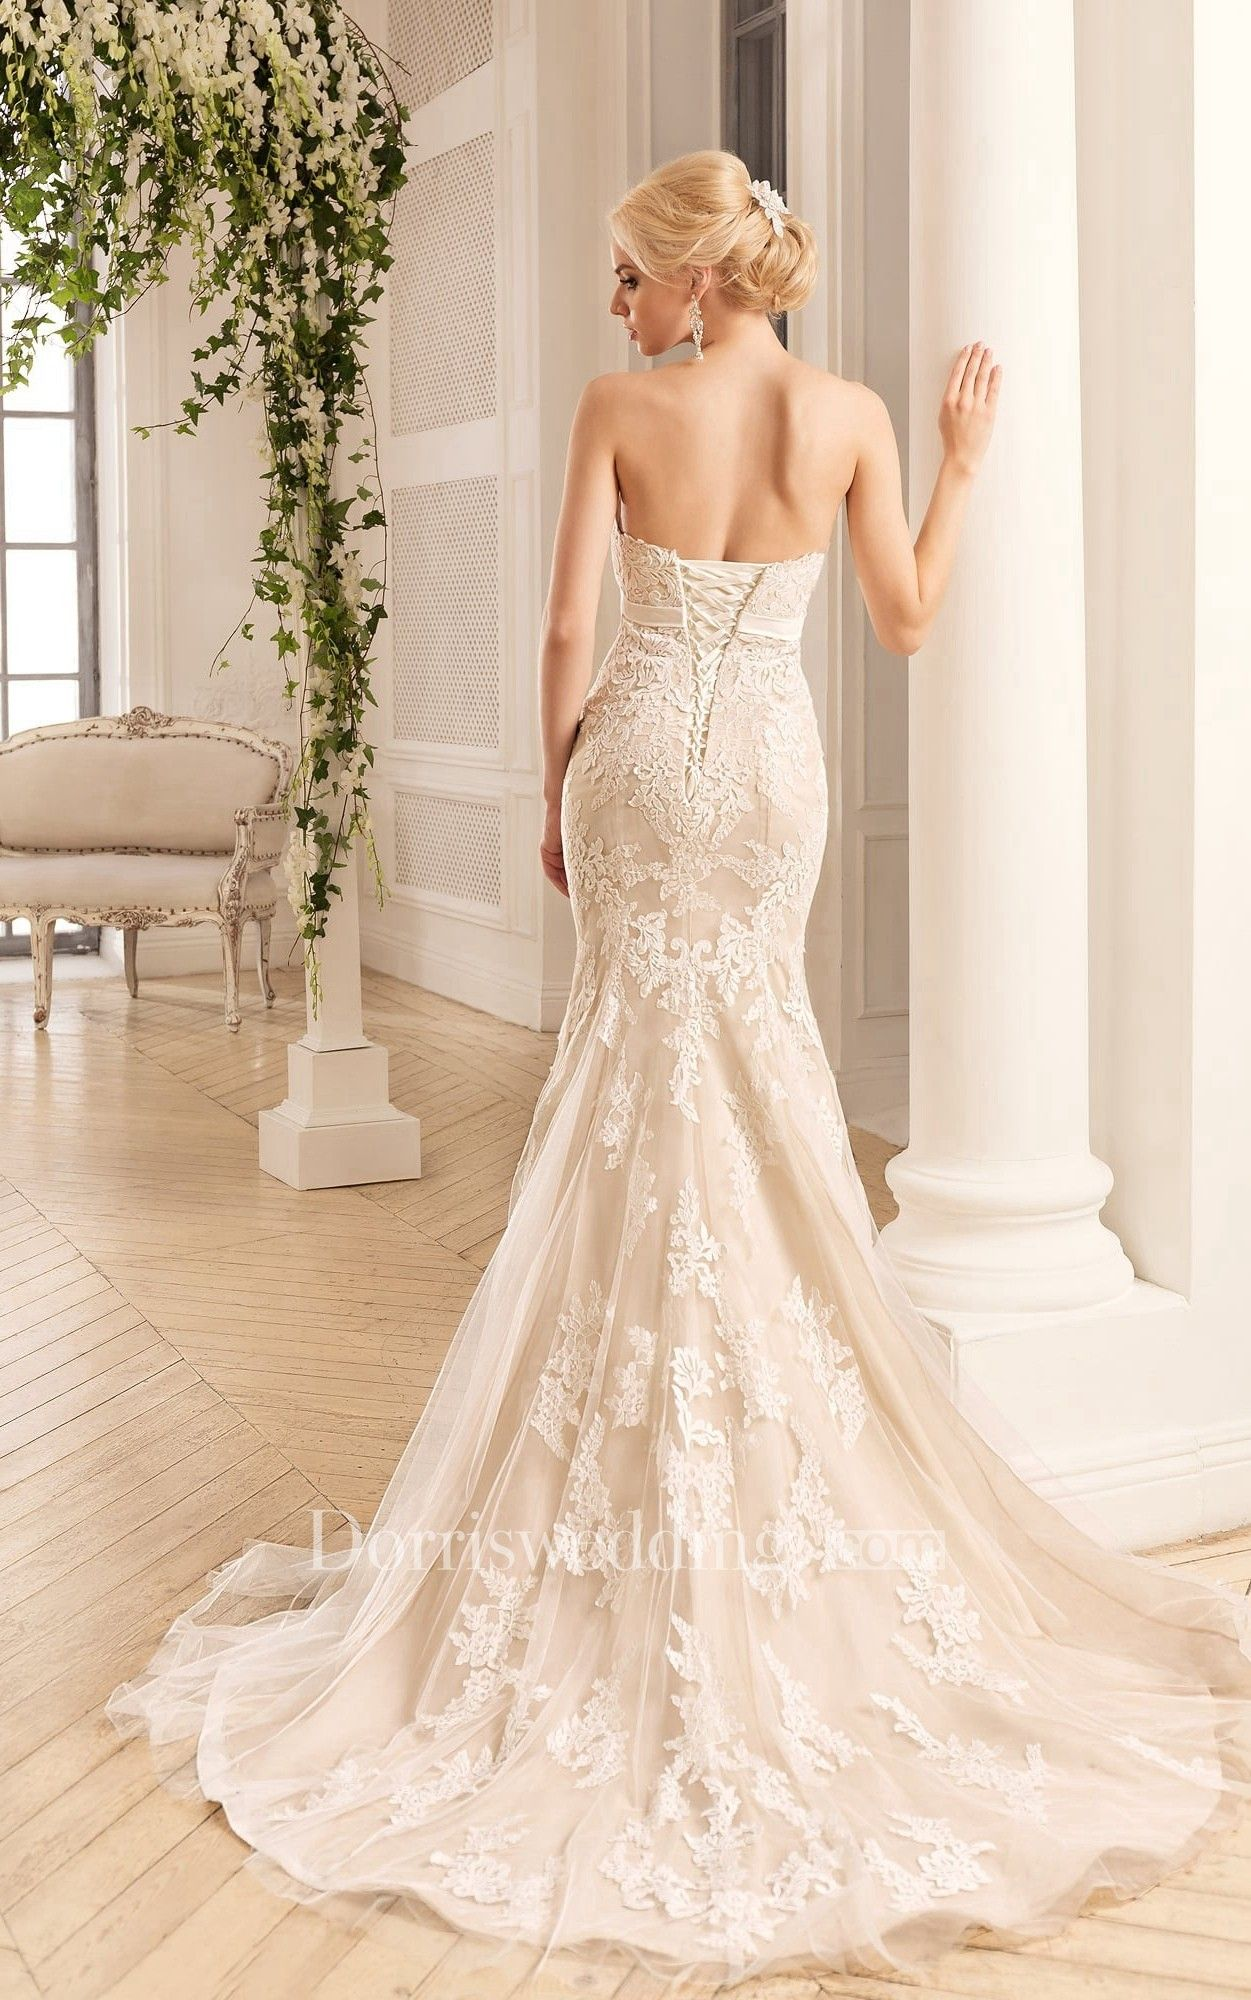 Mermaid Long Sweetheart Sleeveless Backless Lace Tulle Dress With